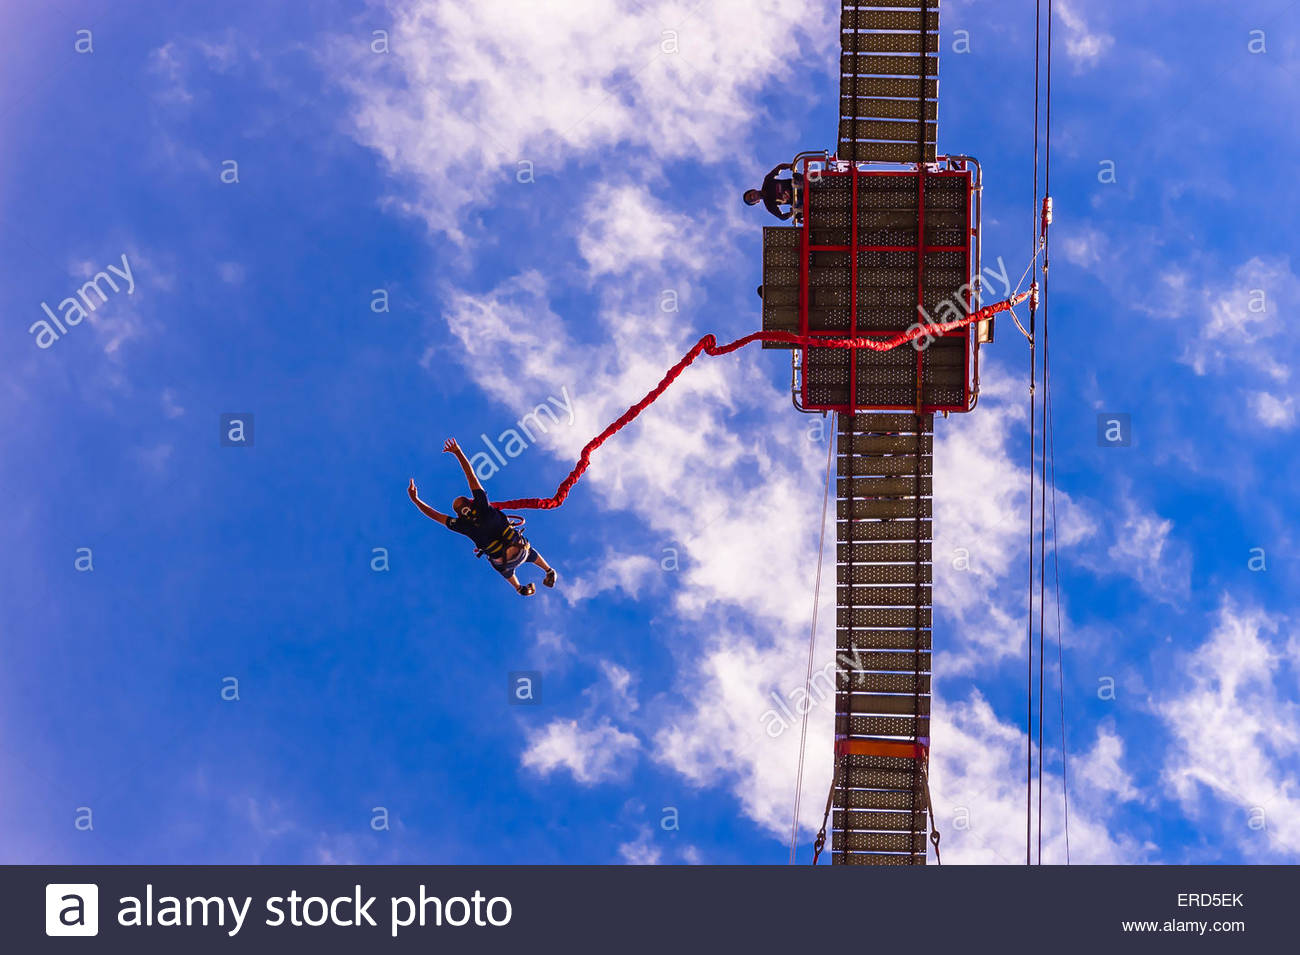 Man jumping off of the 100 meter (328 foot) bungee jump at Orlando